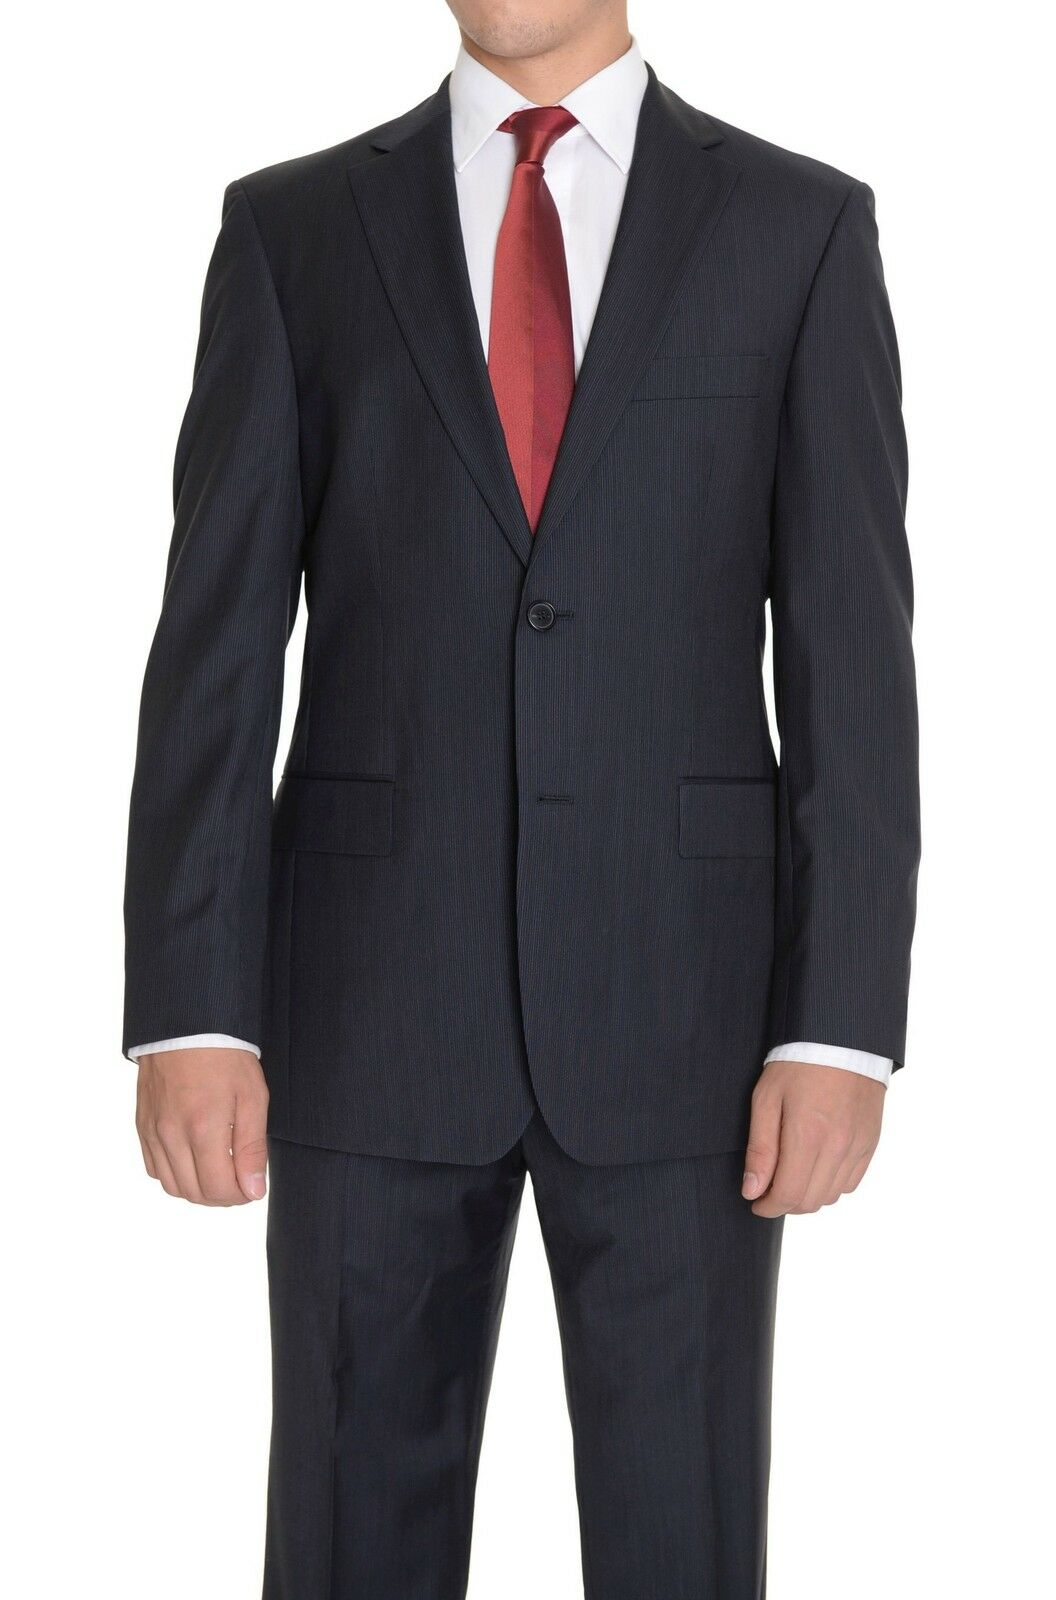 Hugo Boss The Grand/Central Navy Blau Pinstriped Two Button Super 100 Wool Suit